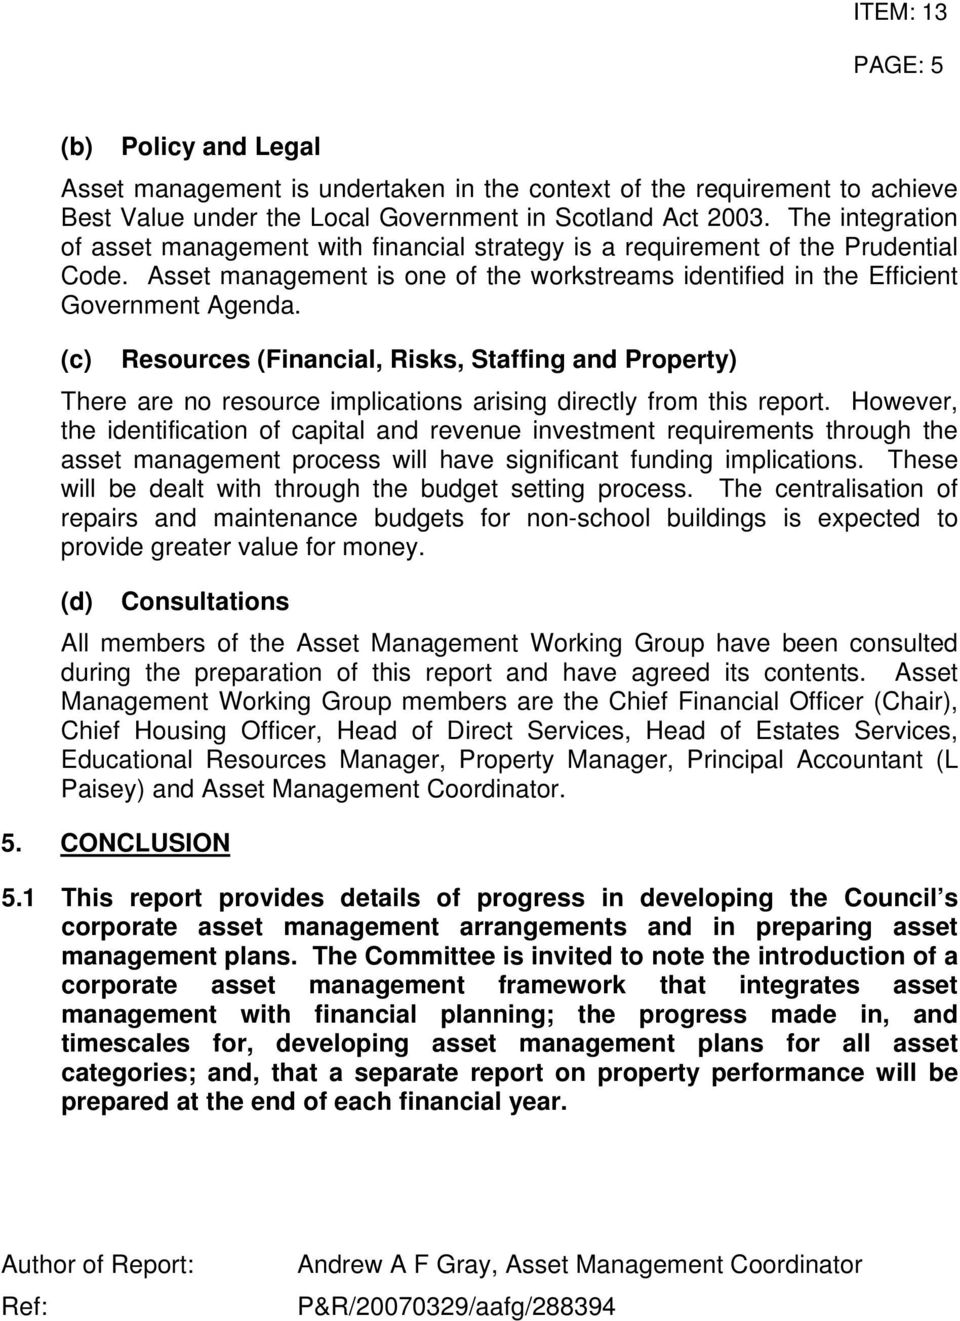 (c) Resources (Financial, Risks, Staffing and Property) There are no resource implications arising directly from this report.